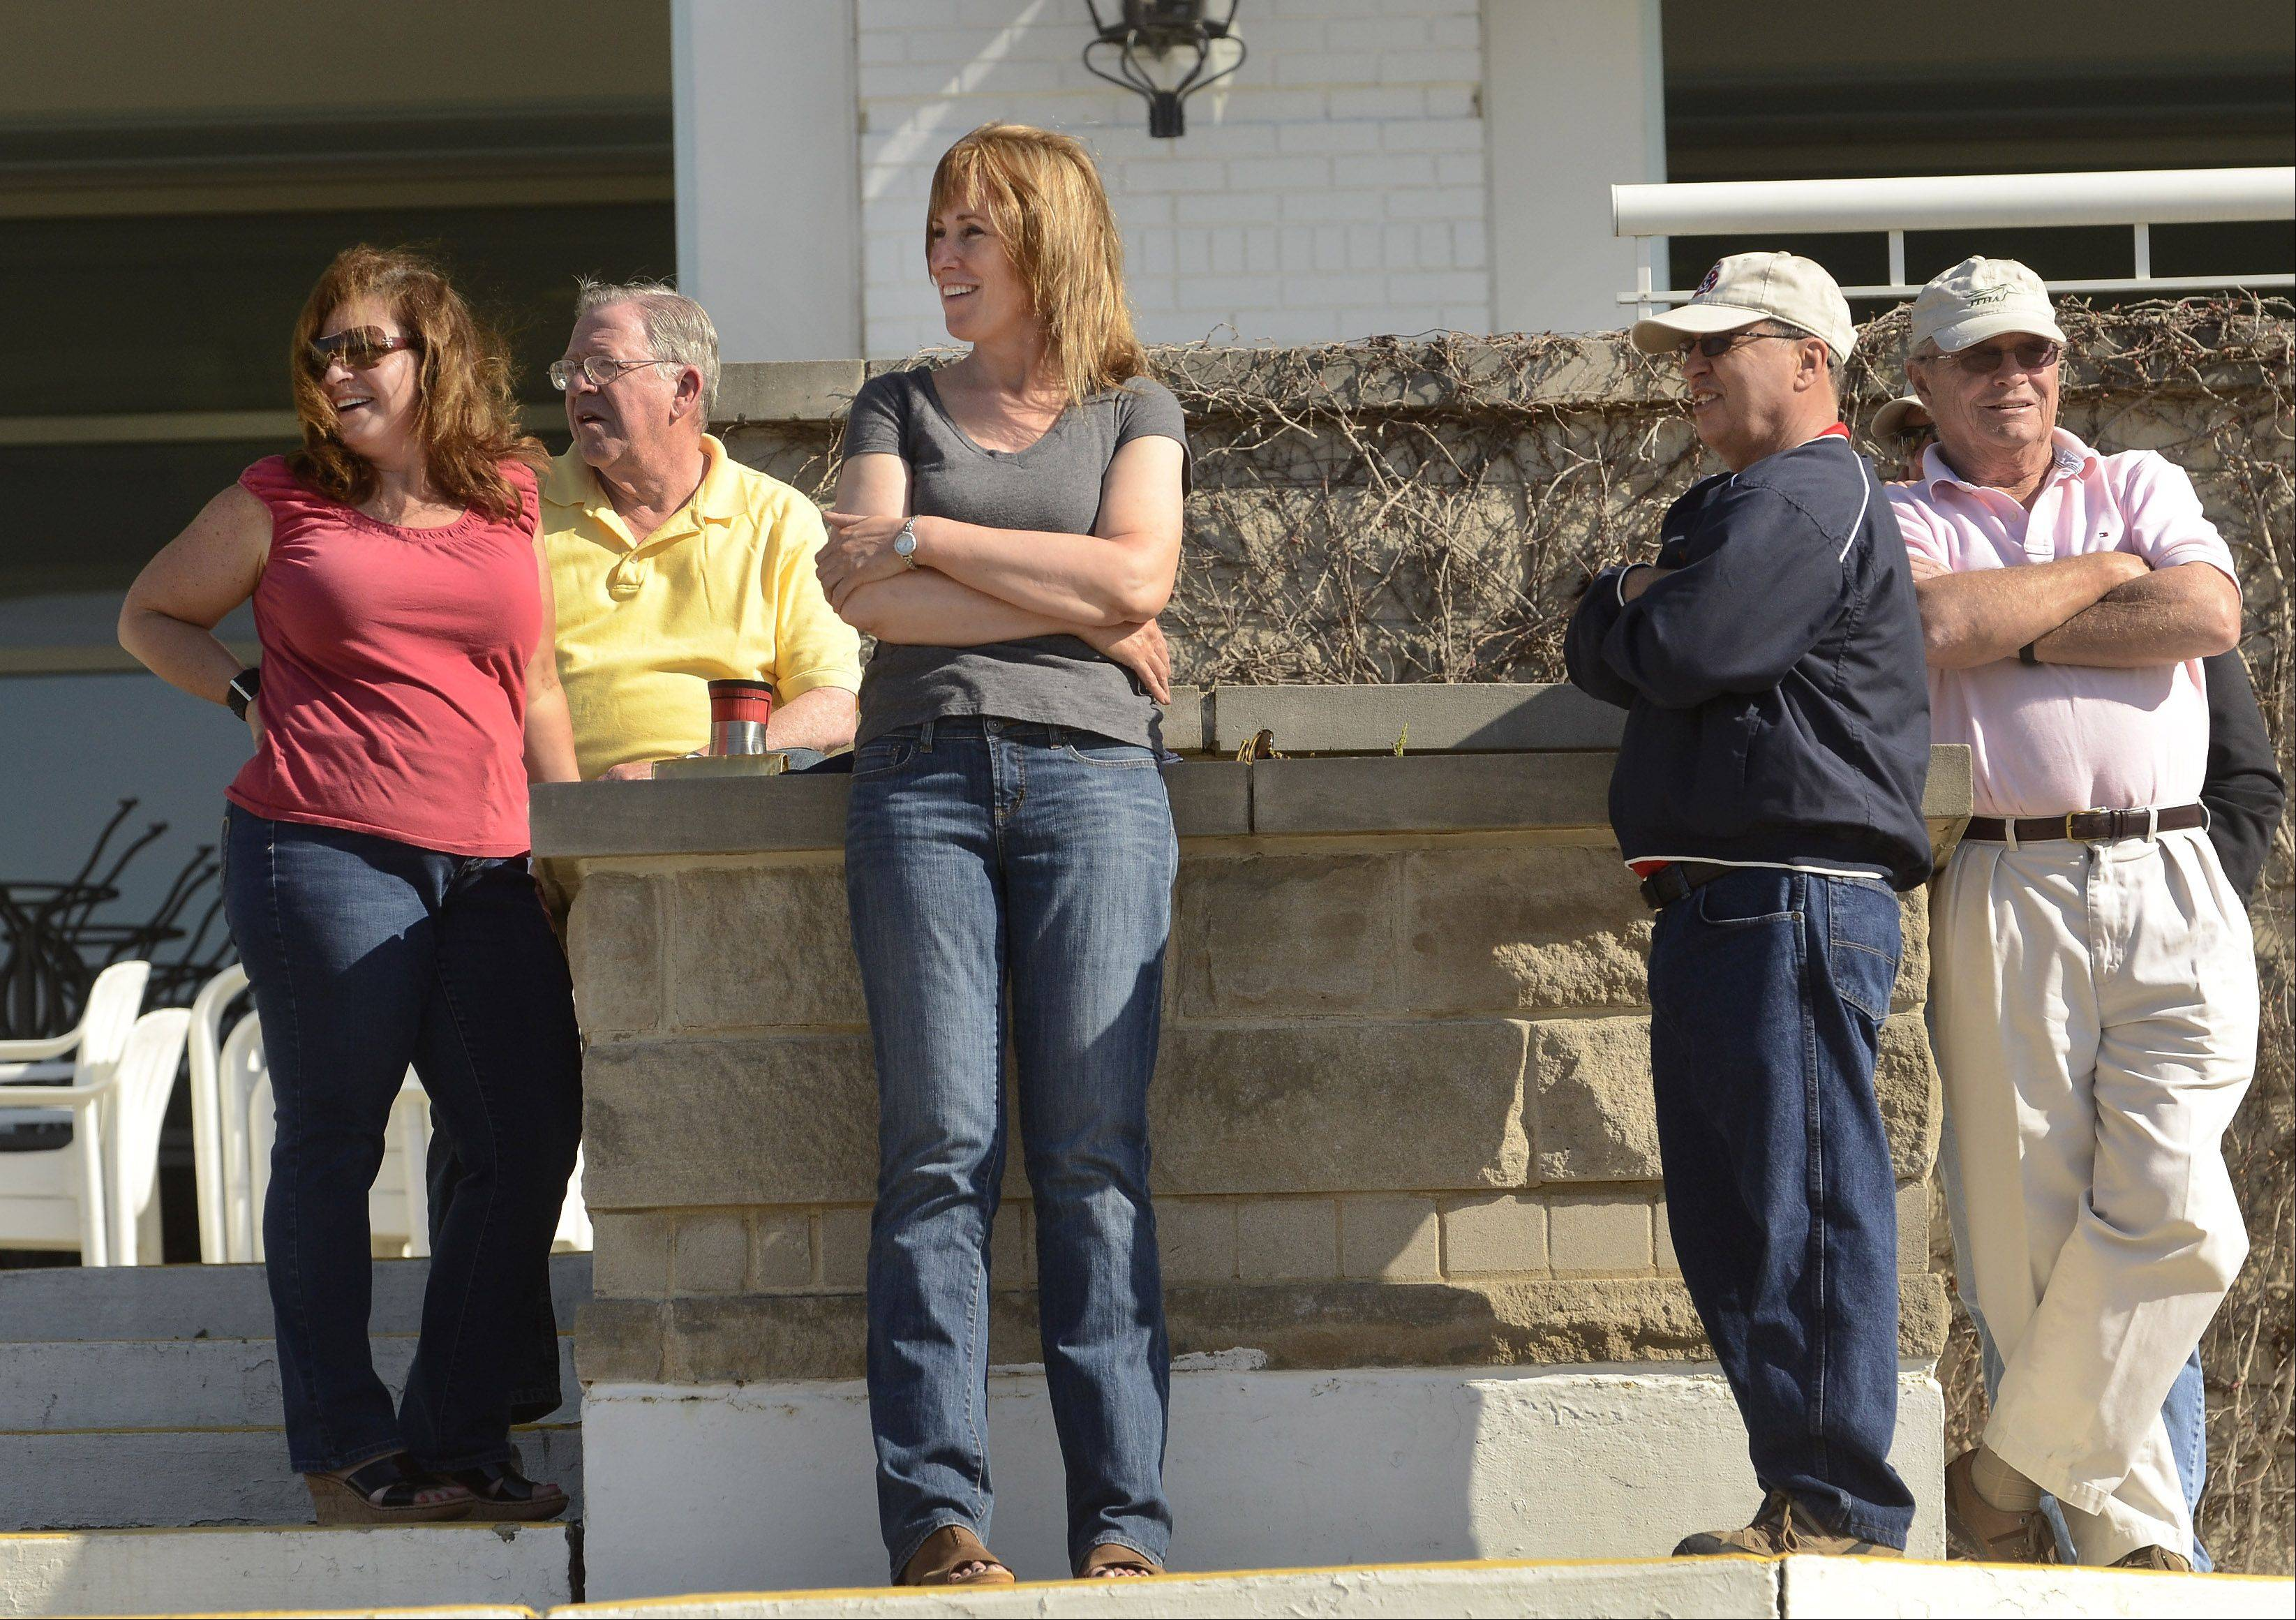 Horse owner Theresa Nugent, of Chicago, center, and Michael Campbell, President of the Illinois Thoroughbred Horseman's Association, to Nugent's left, watch with other owners as horses work out in preparation for opening day at Arlington International Racecourse.